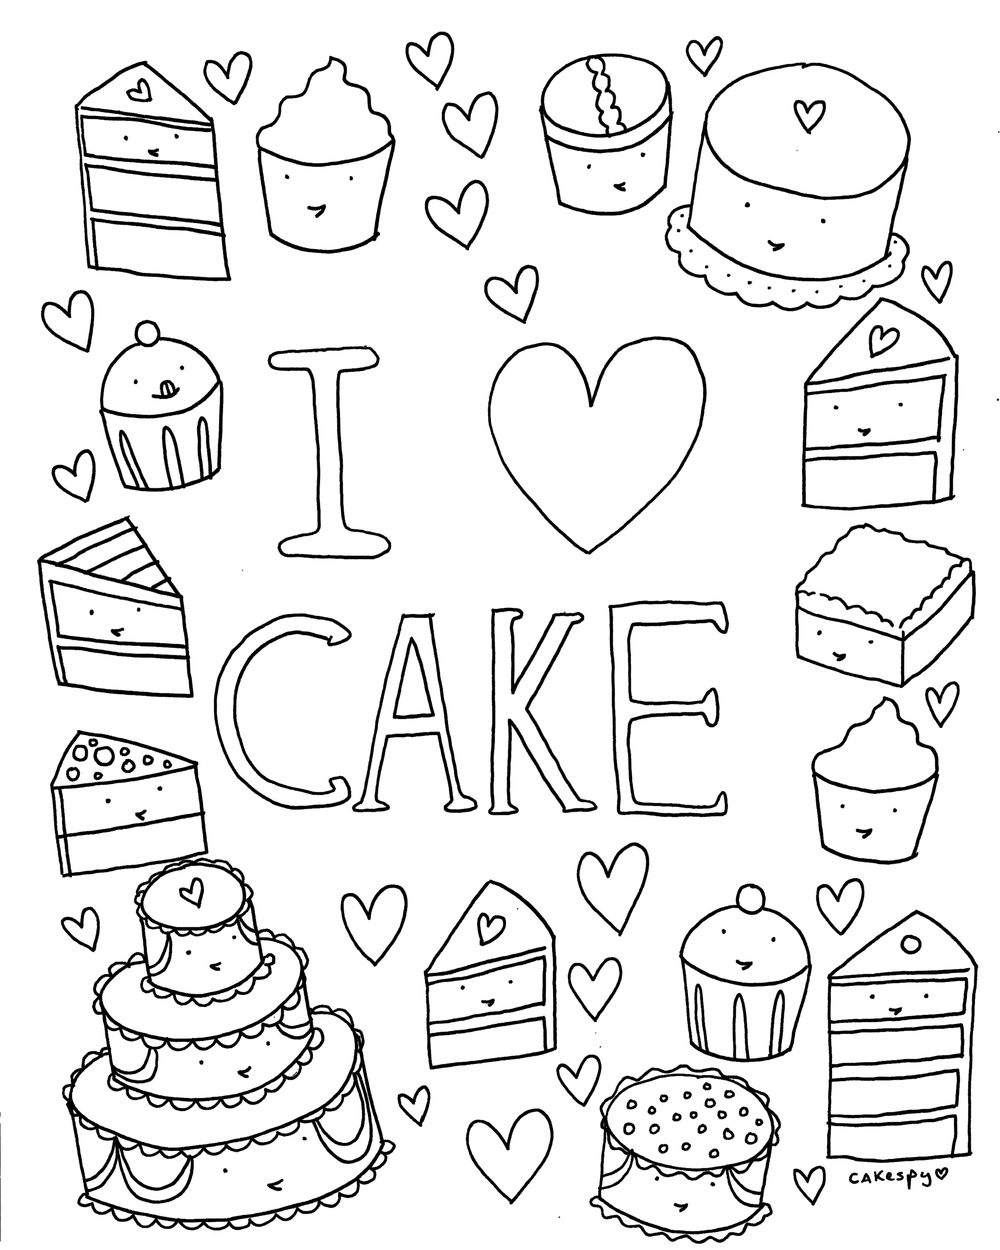 Ordinaire Free Coloring Book Page I Love Cake U2014 CakeSpy